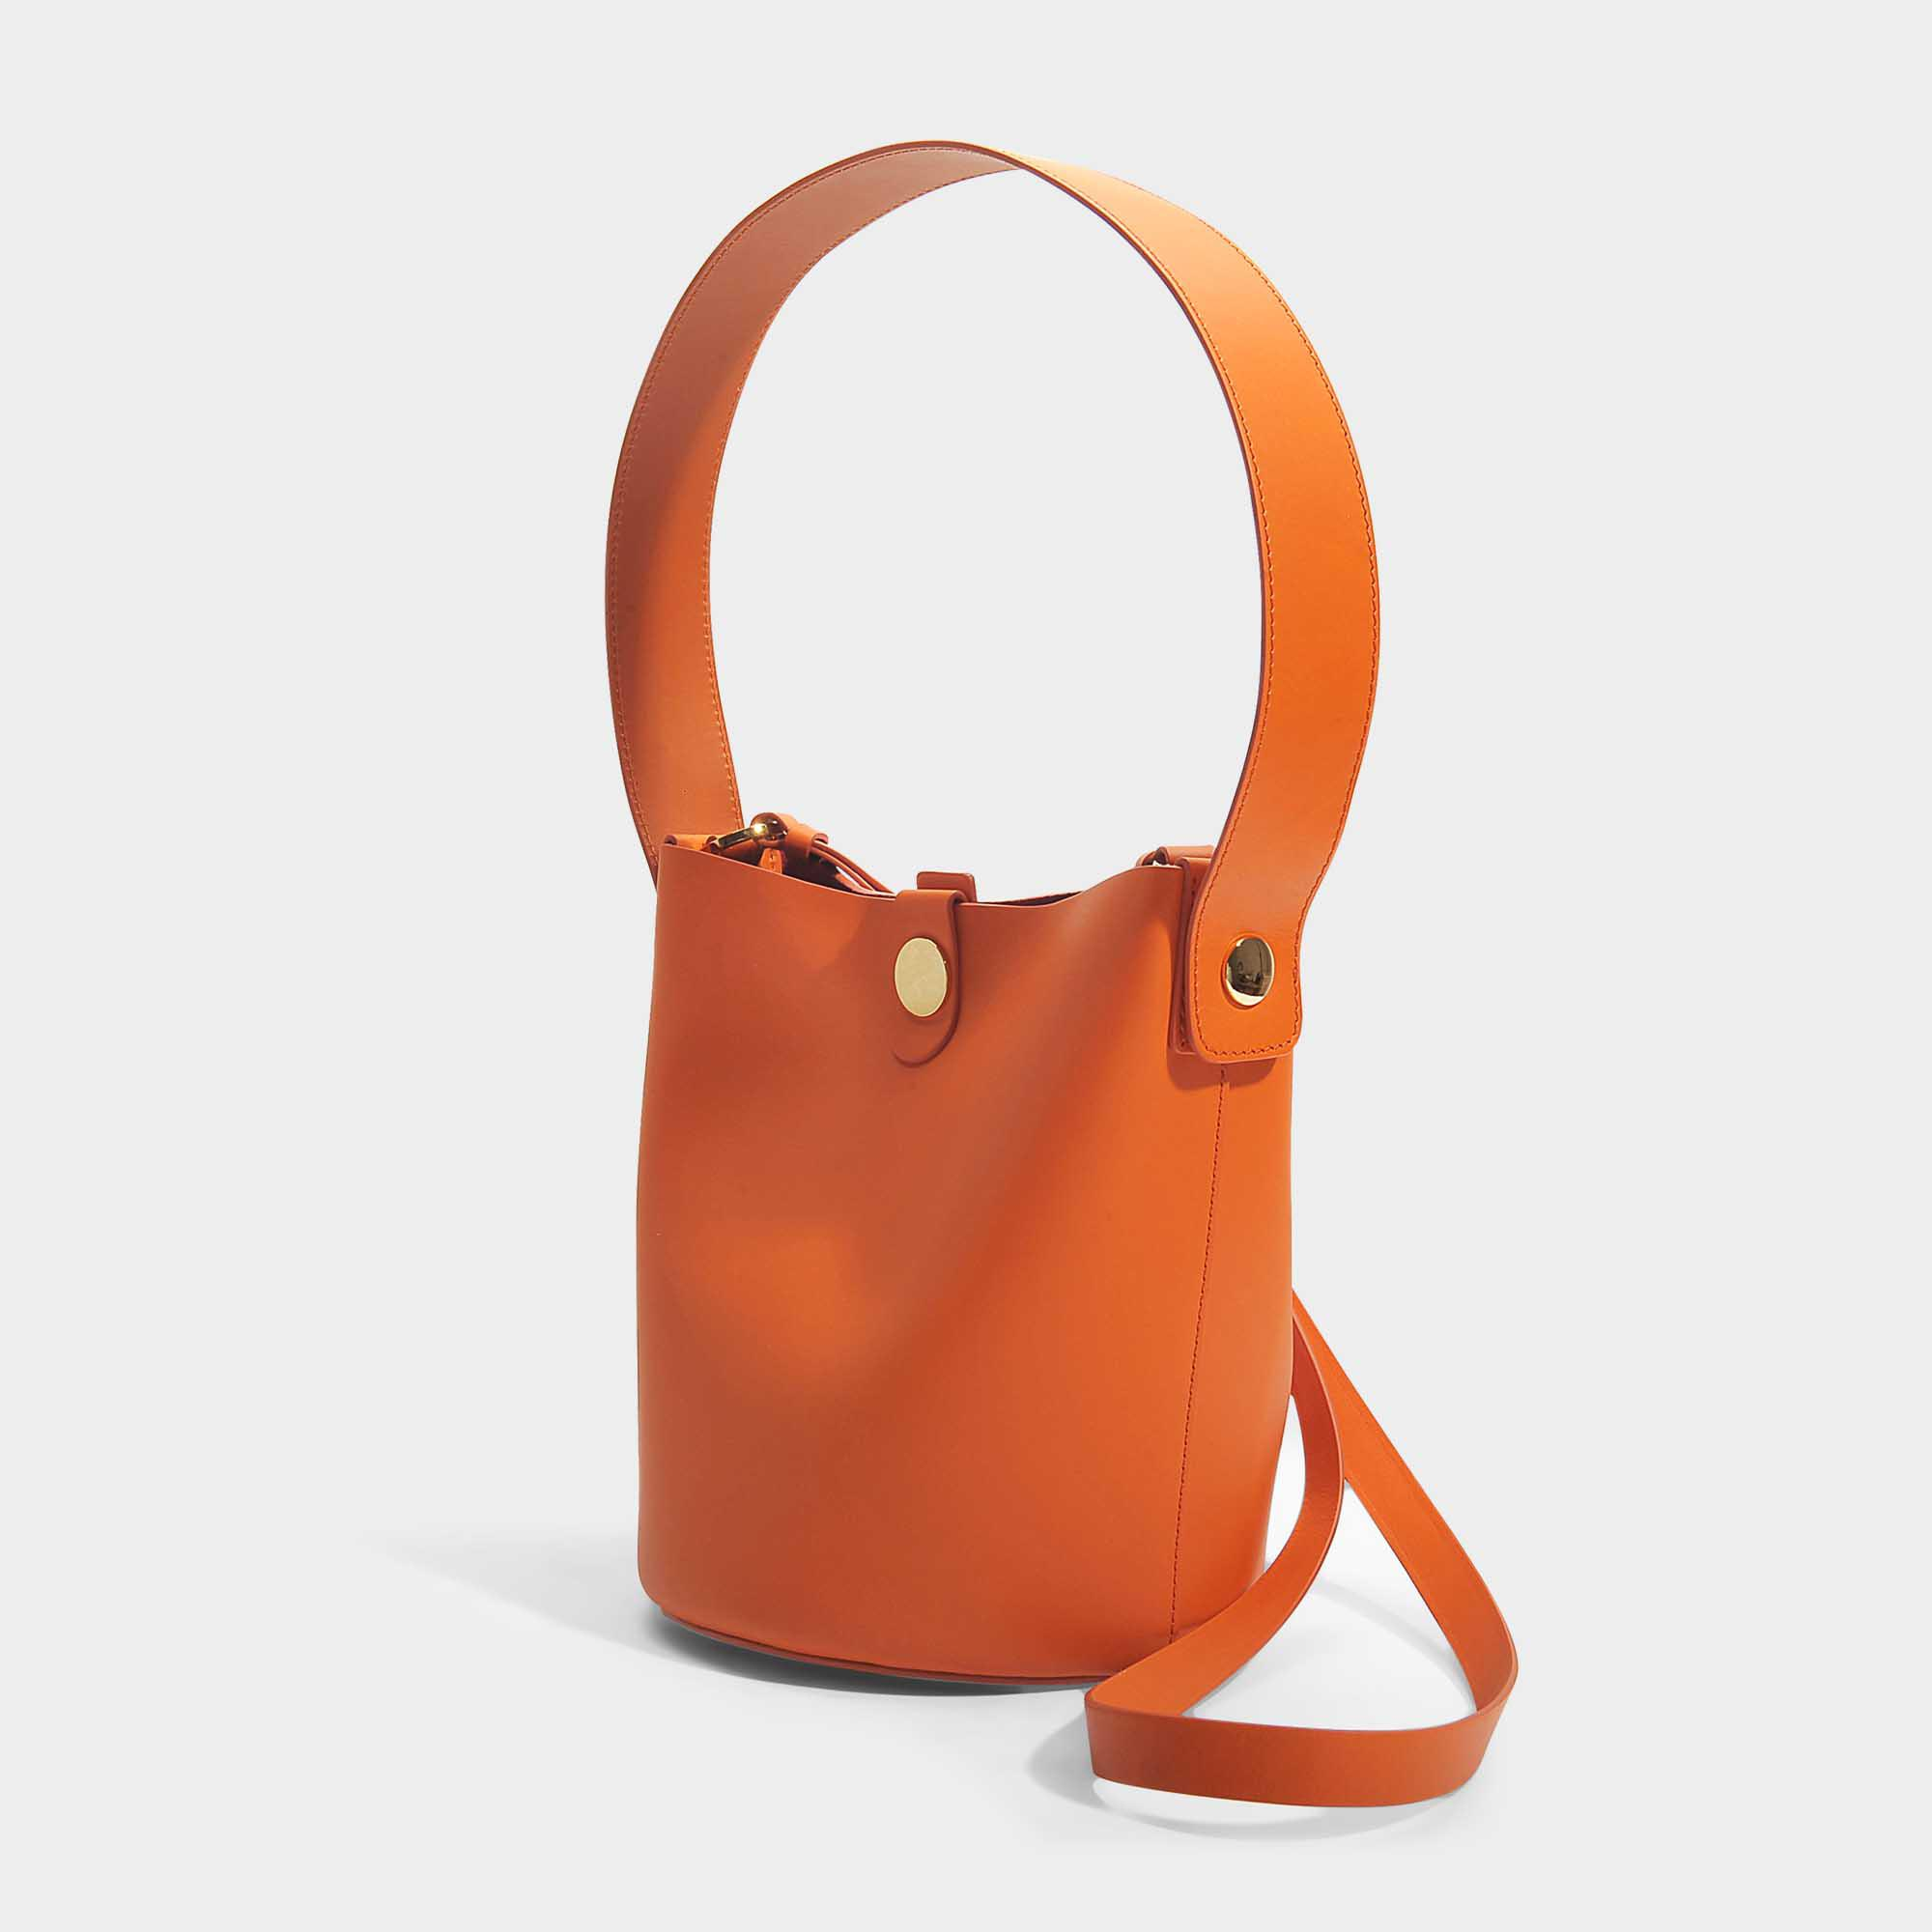 The Swing Bag in Clementine Cow Leather Sophie Hulme XUYfwmt